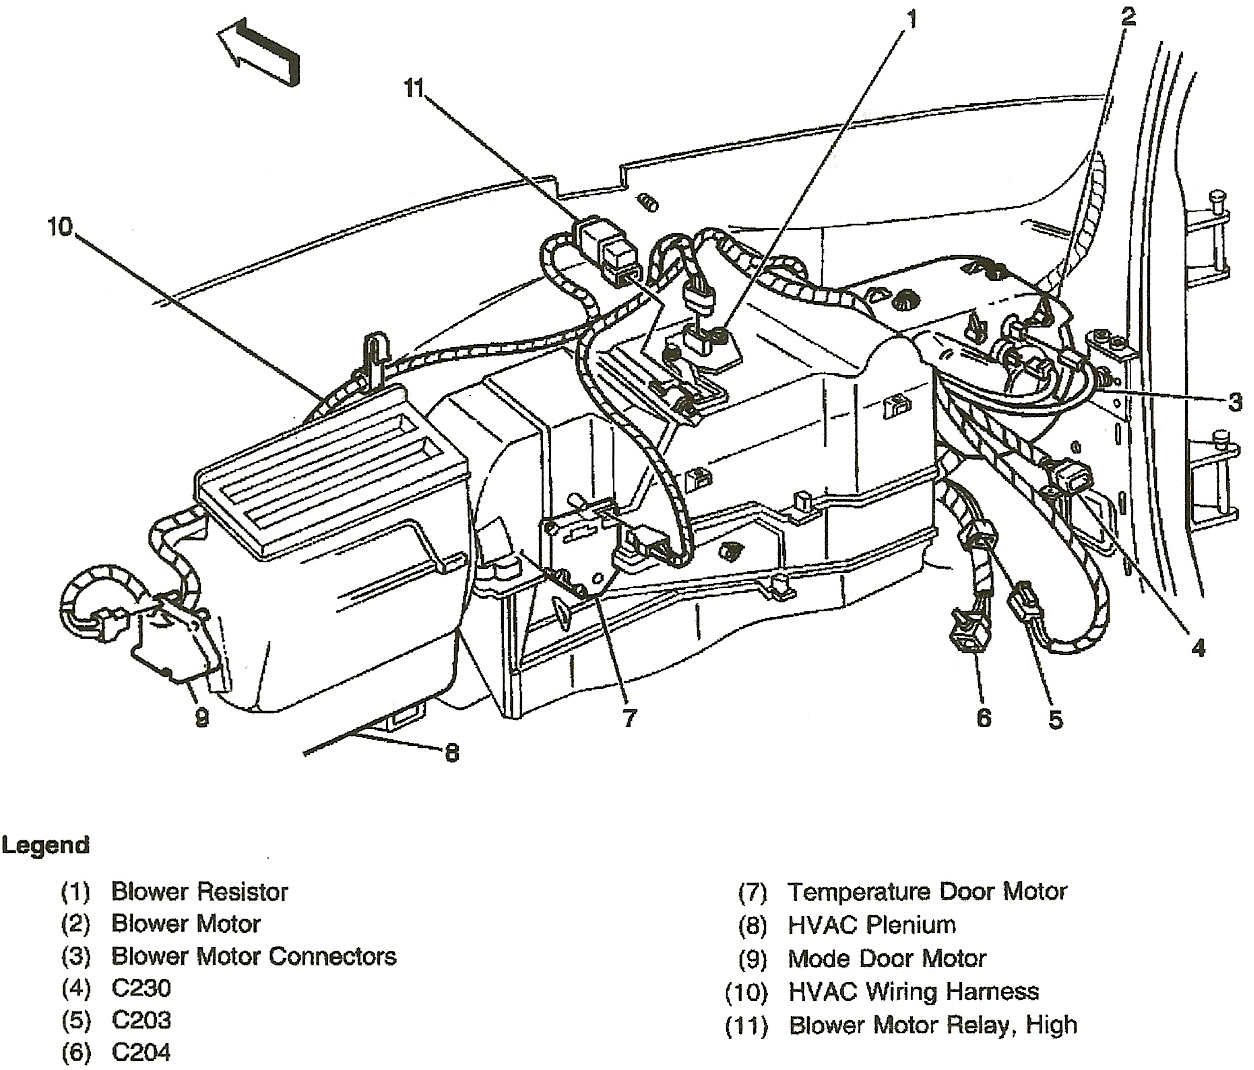 hight resolution of chevy 4x4 transmission diagram schema wiring diagram 2000 gmc sierra 1500 parts 1994 chevrolet transmission diagram